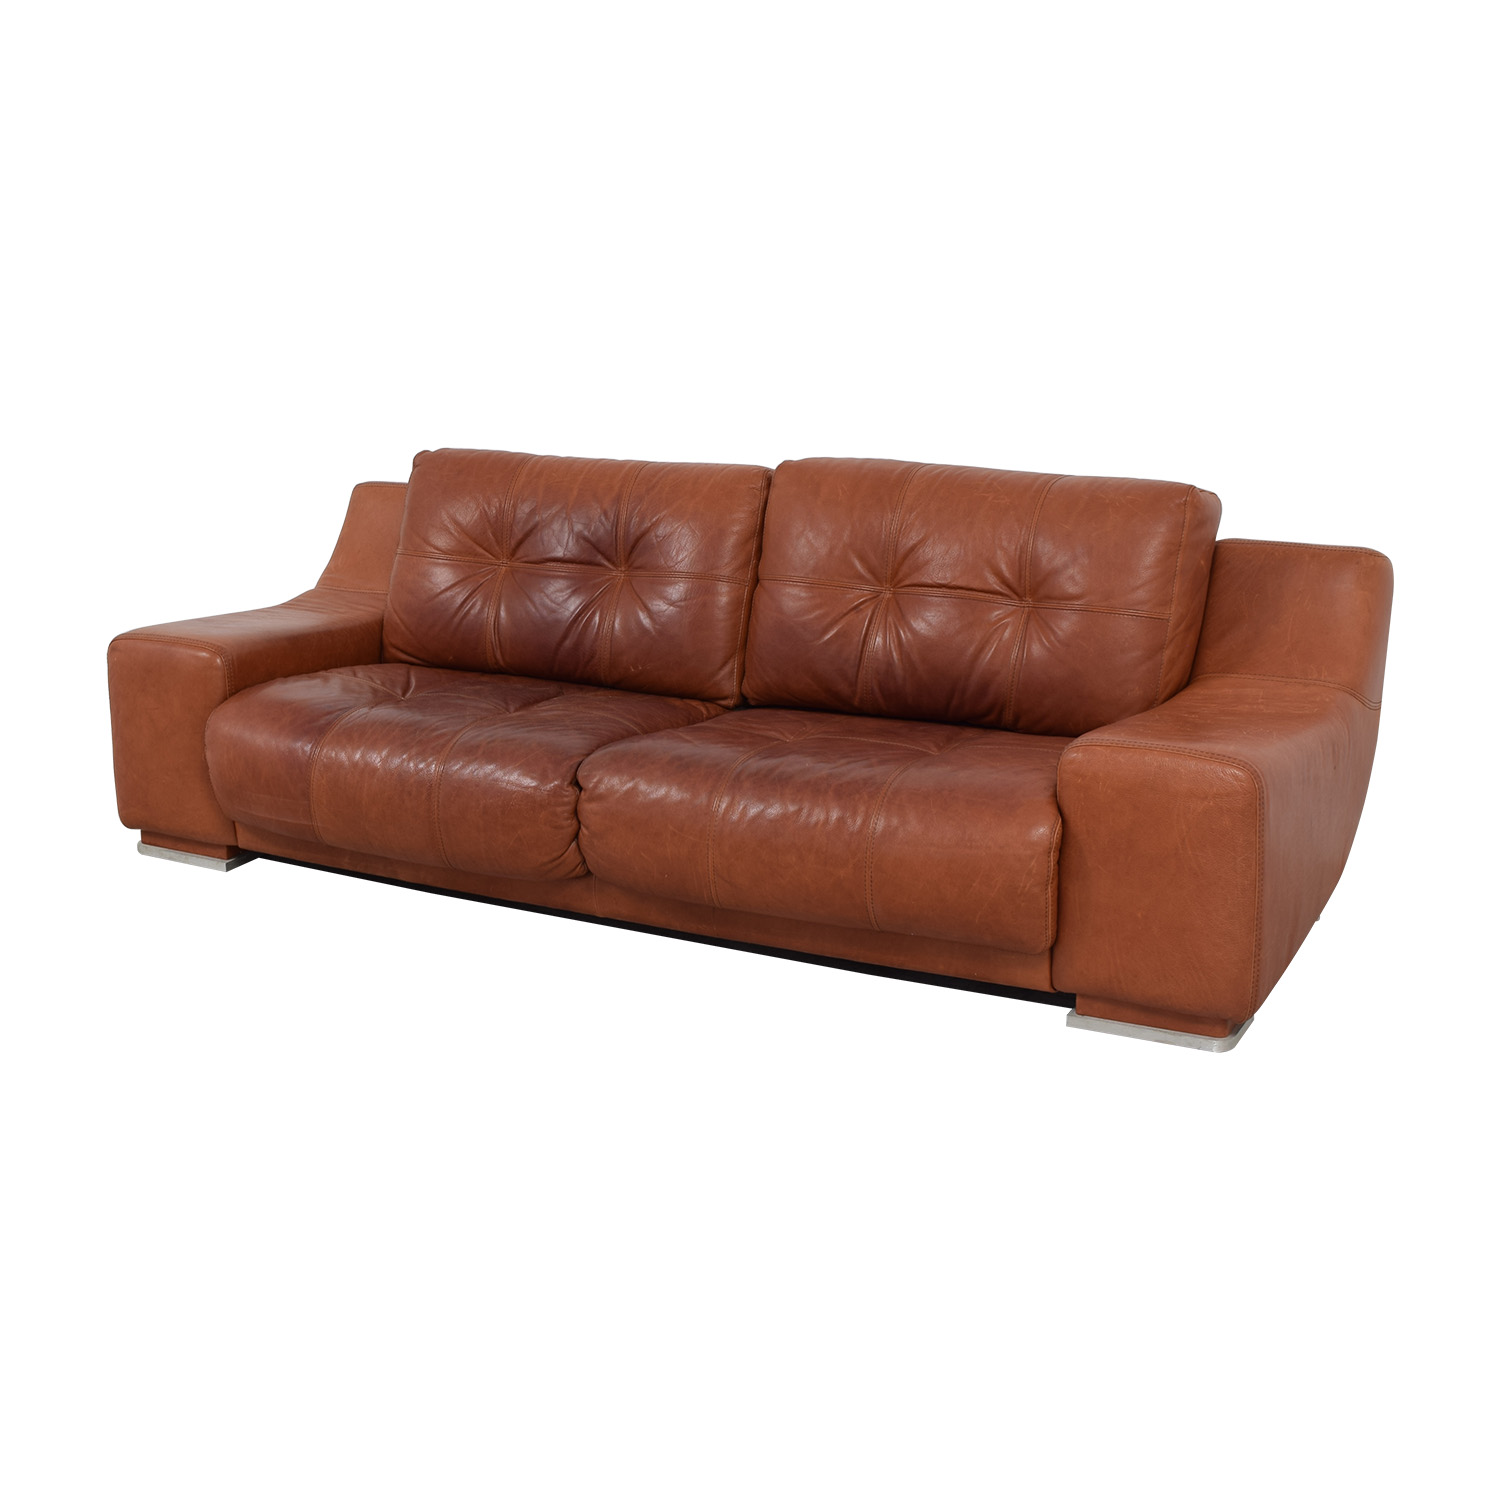 Contempo Contempo Leather Sofa second hand